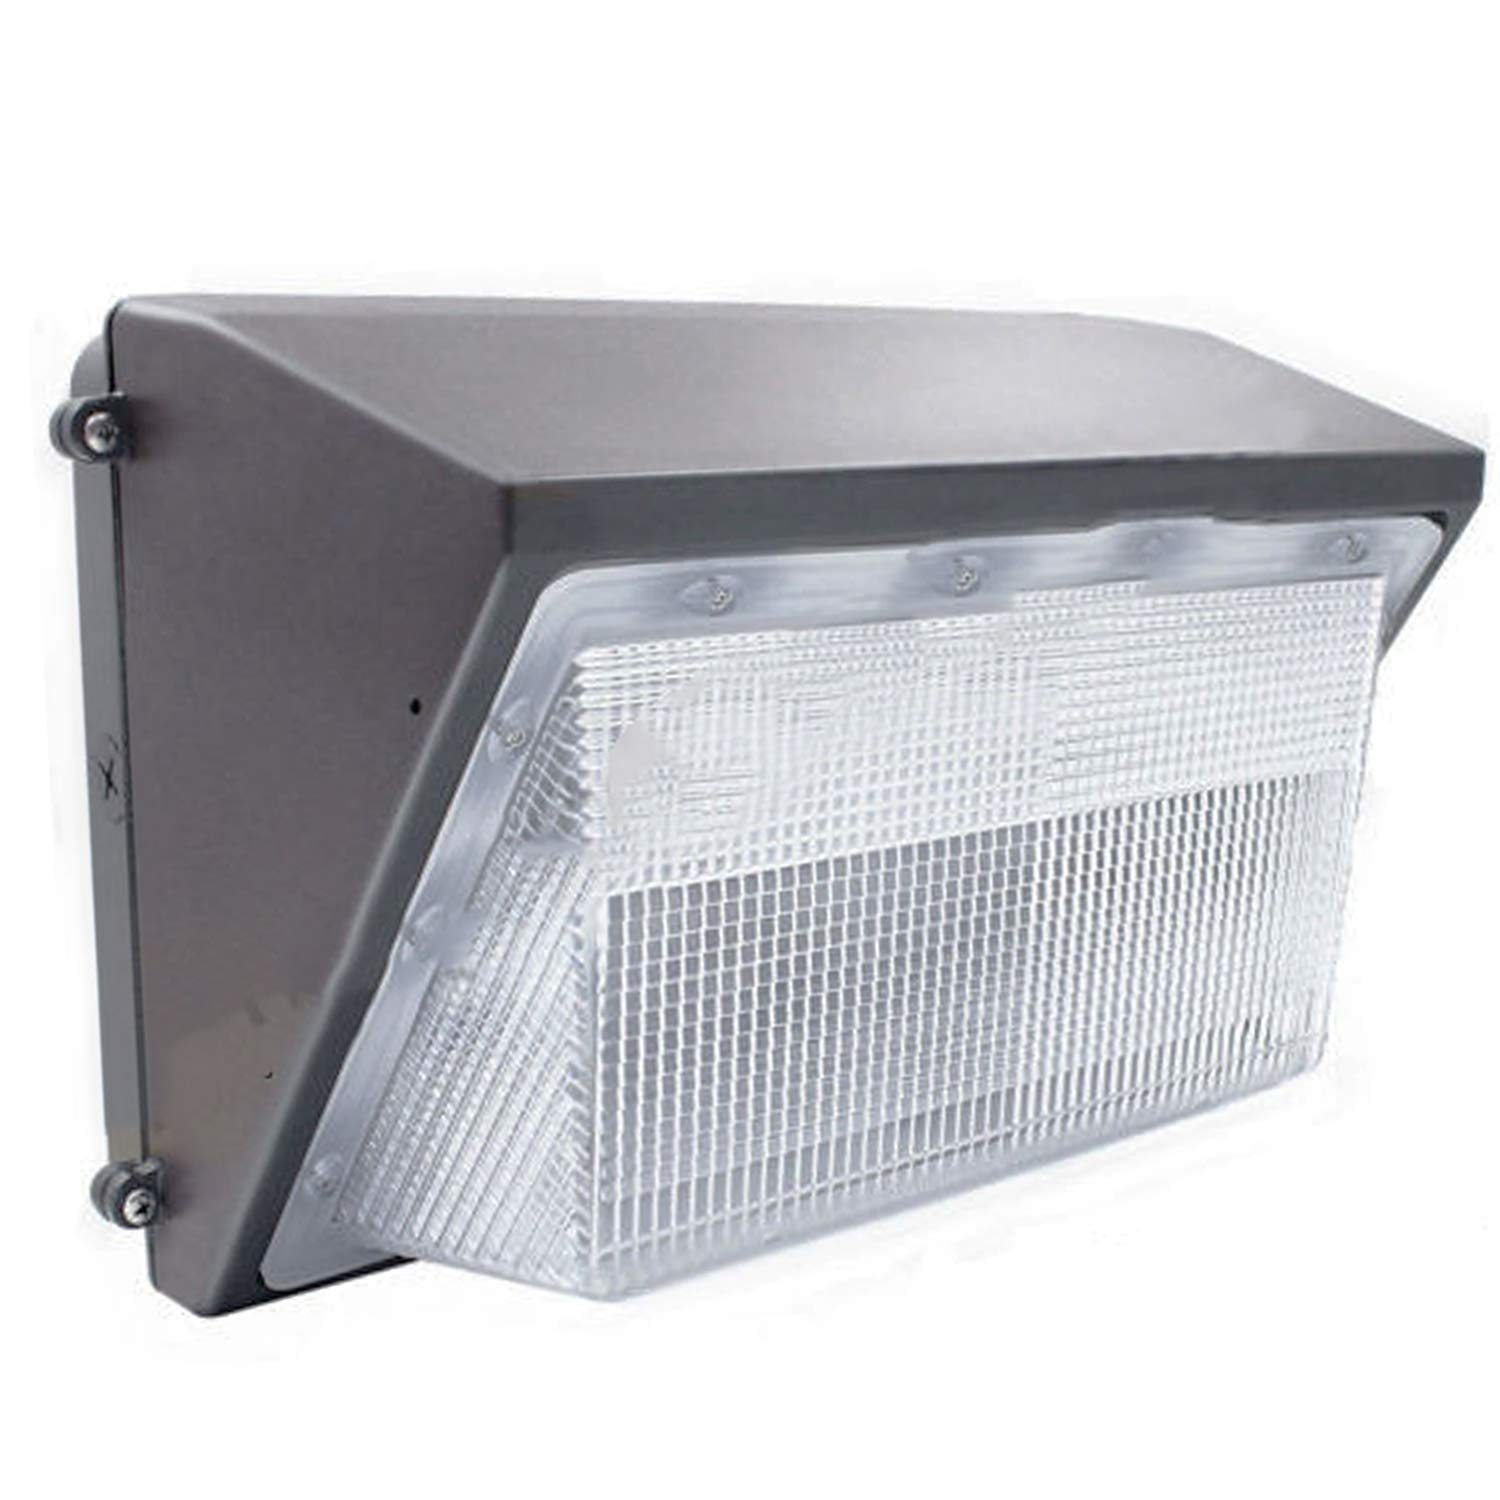 8500LM 70Watt LED Wall Pack Light,250-300W HPS MH Bulb Replacement,Outdoor Wall Pack LED Lighting Fixture for Building Home Security and Walkways (70Watt)